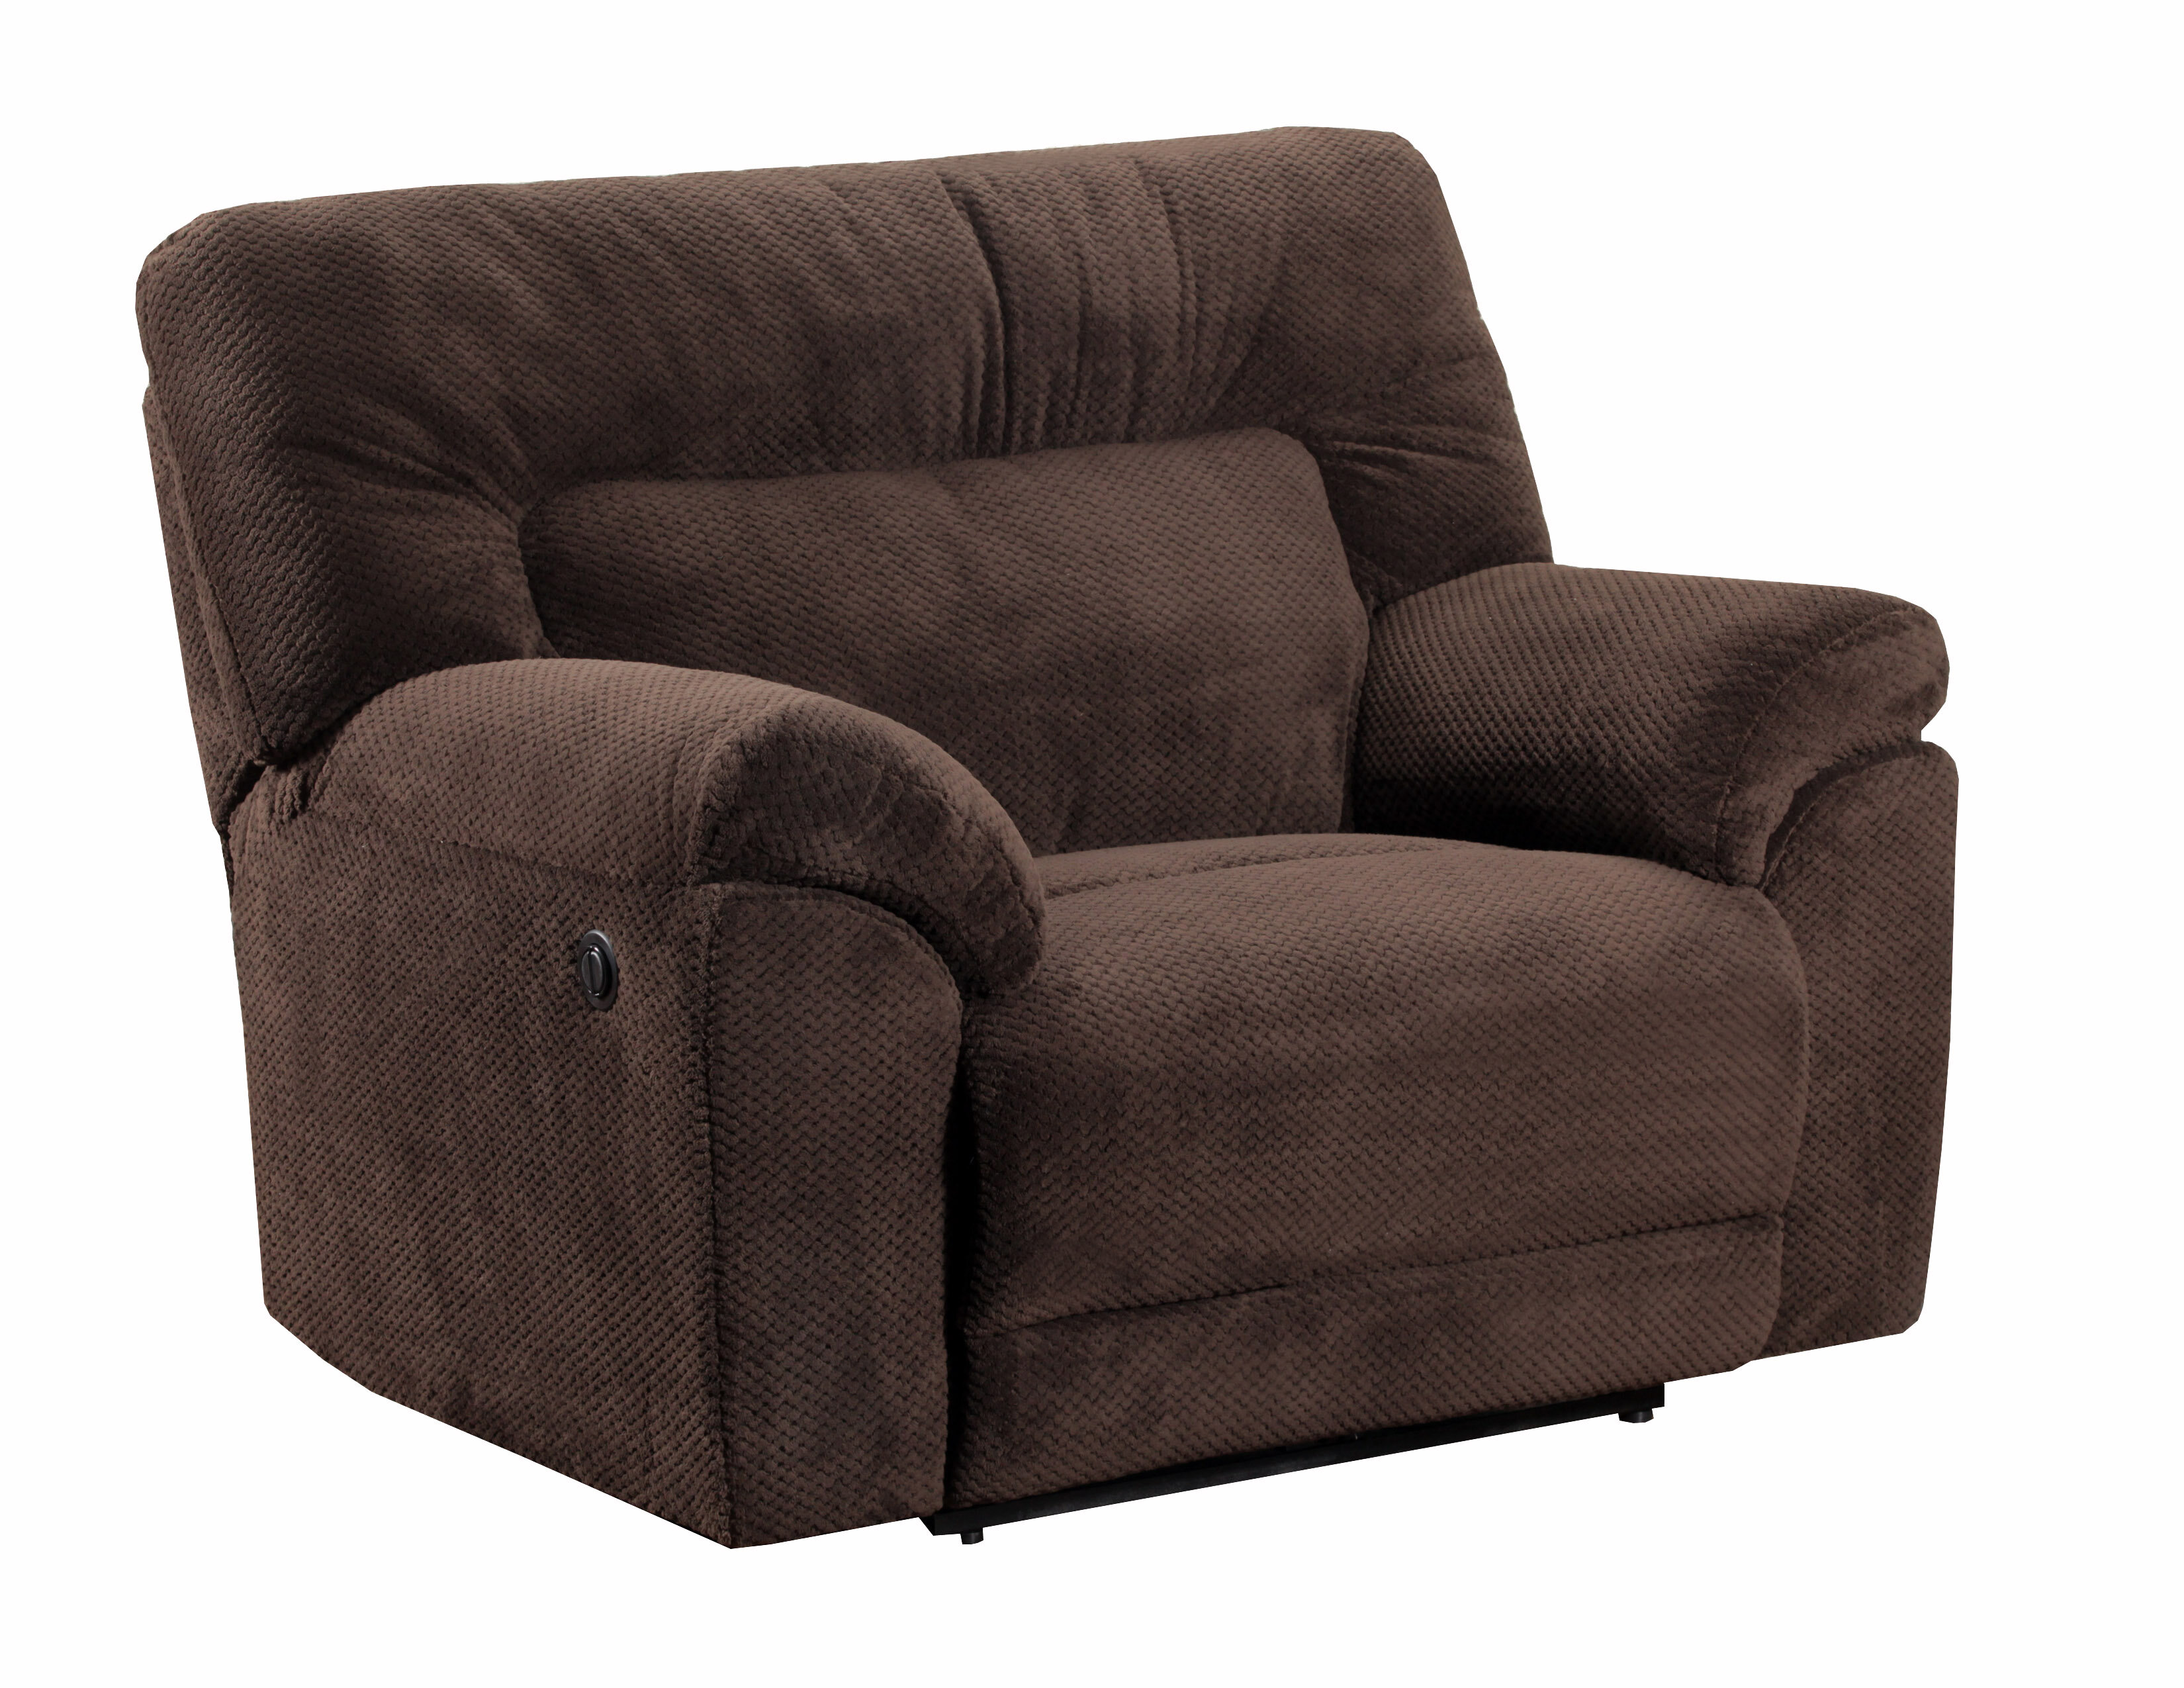 Radcliff Recliner by Simmons Upholstery Oversized Recliners